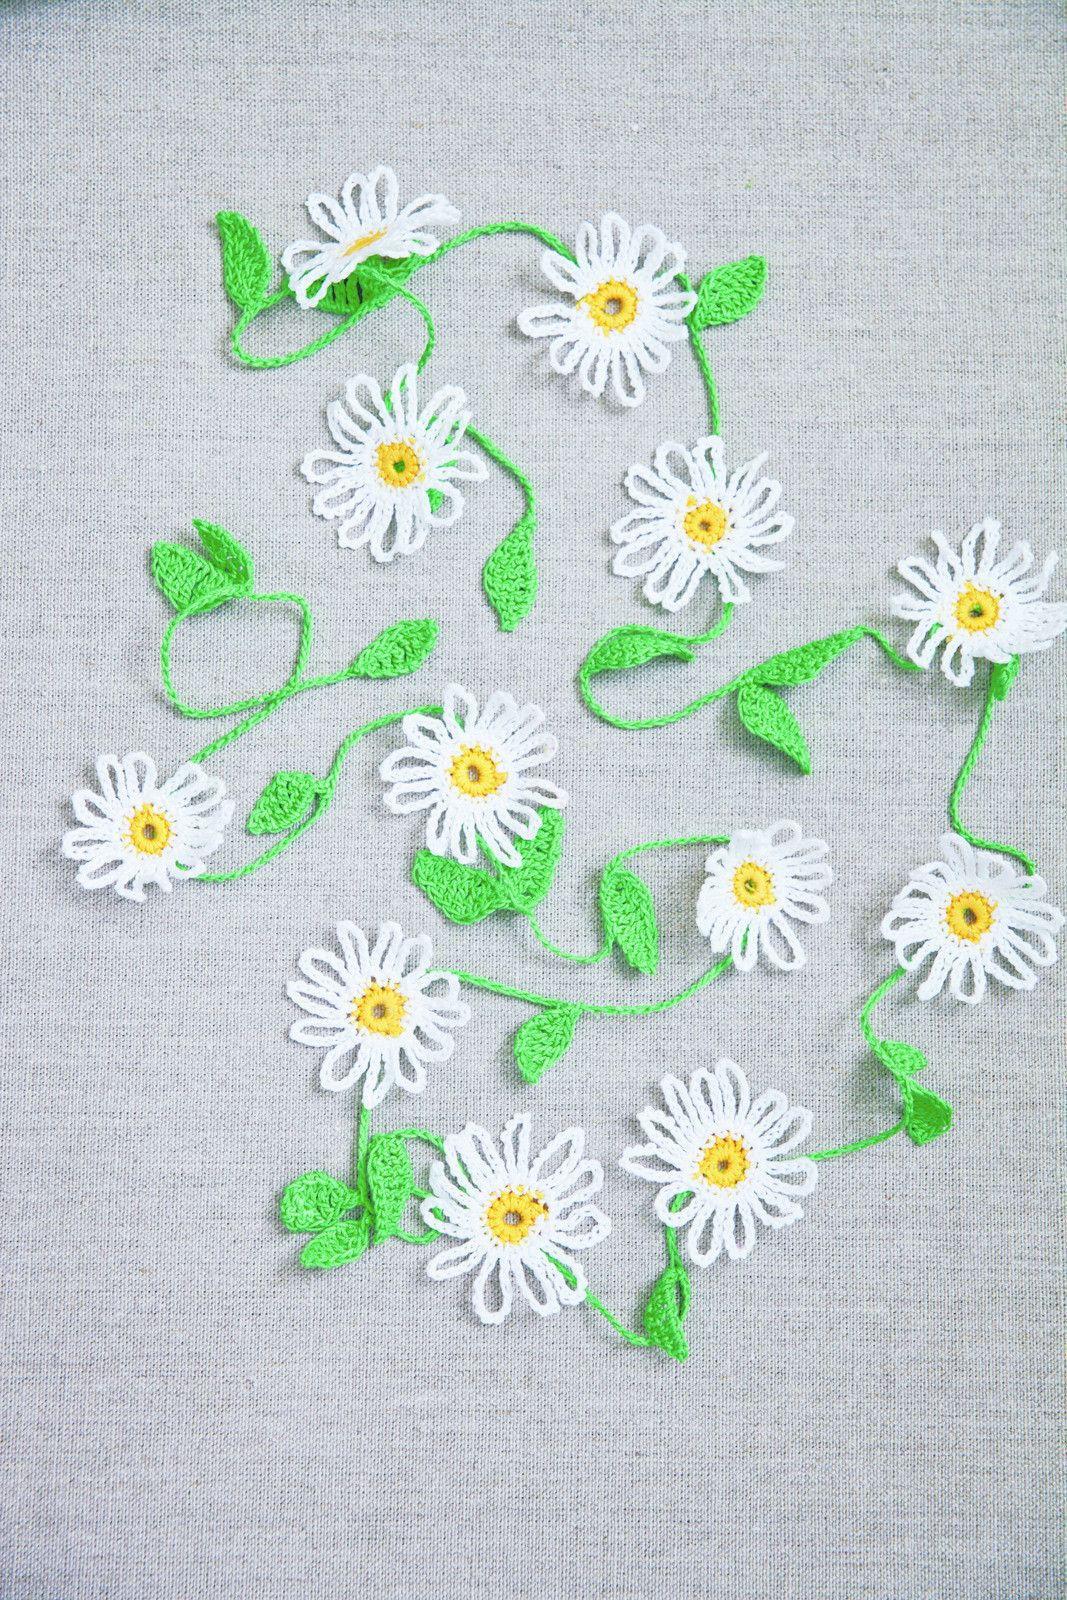 Daisy chain daisy chain crochet hooks and buntings crochet a daisy chain free tutorial with pictures on how to make a bunting izmirmasajfo